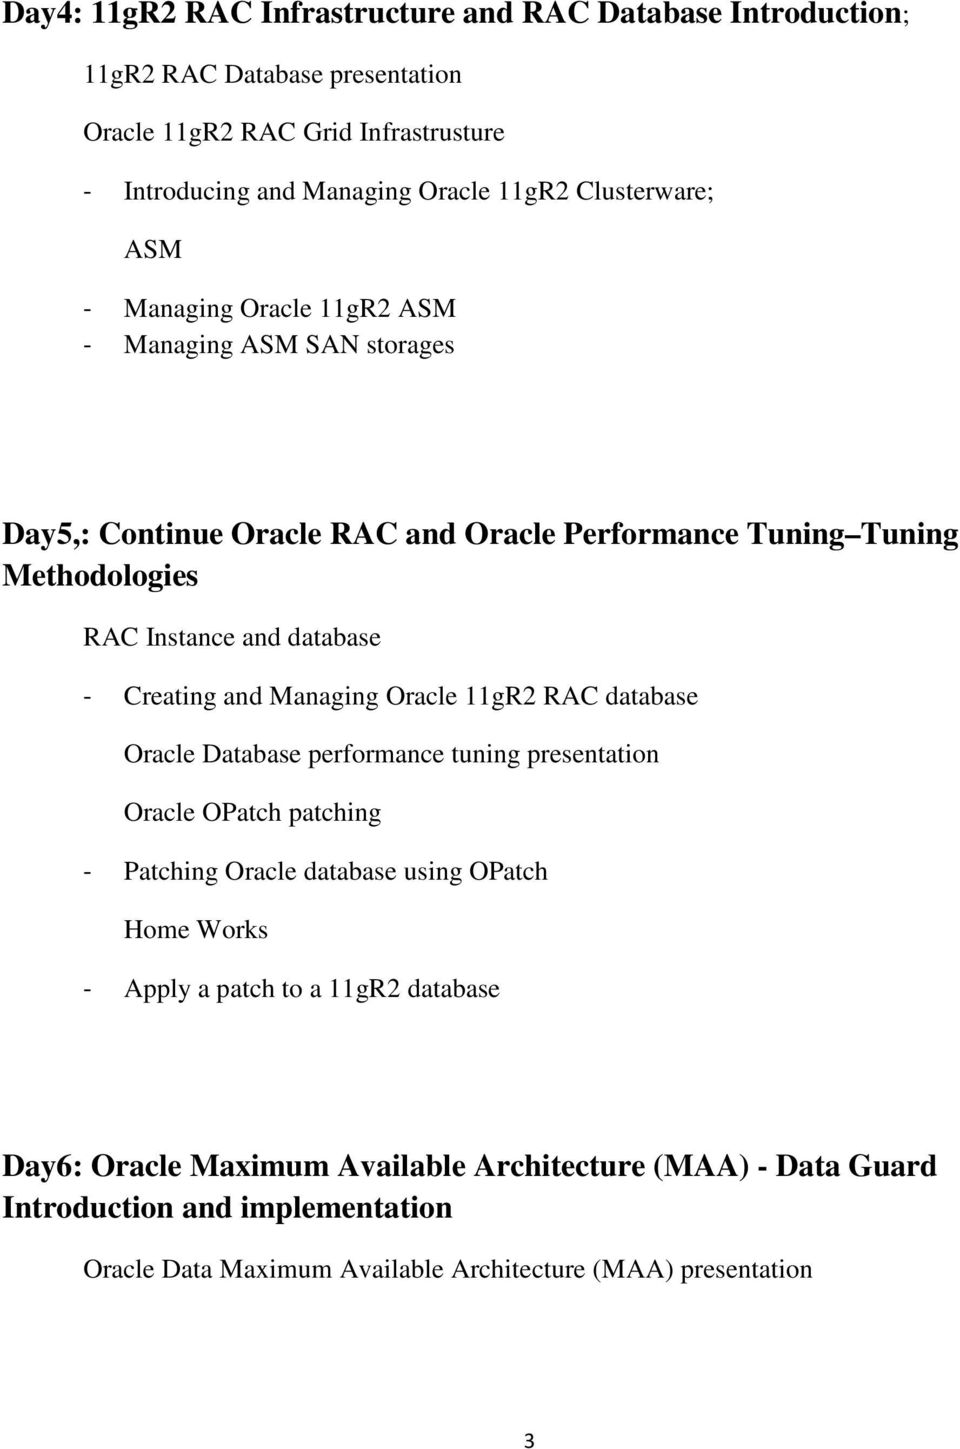 database - Creating and Managing Oracle 11gR2 RAC database Oracle Database performance tuning presentation Oracle OPatch patching - Patching Oracle database using OPatch -